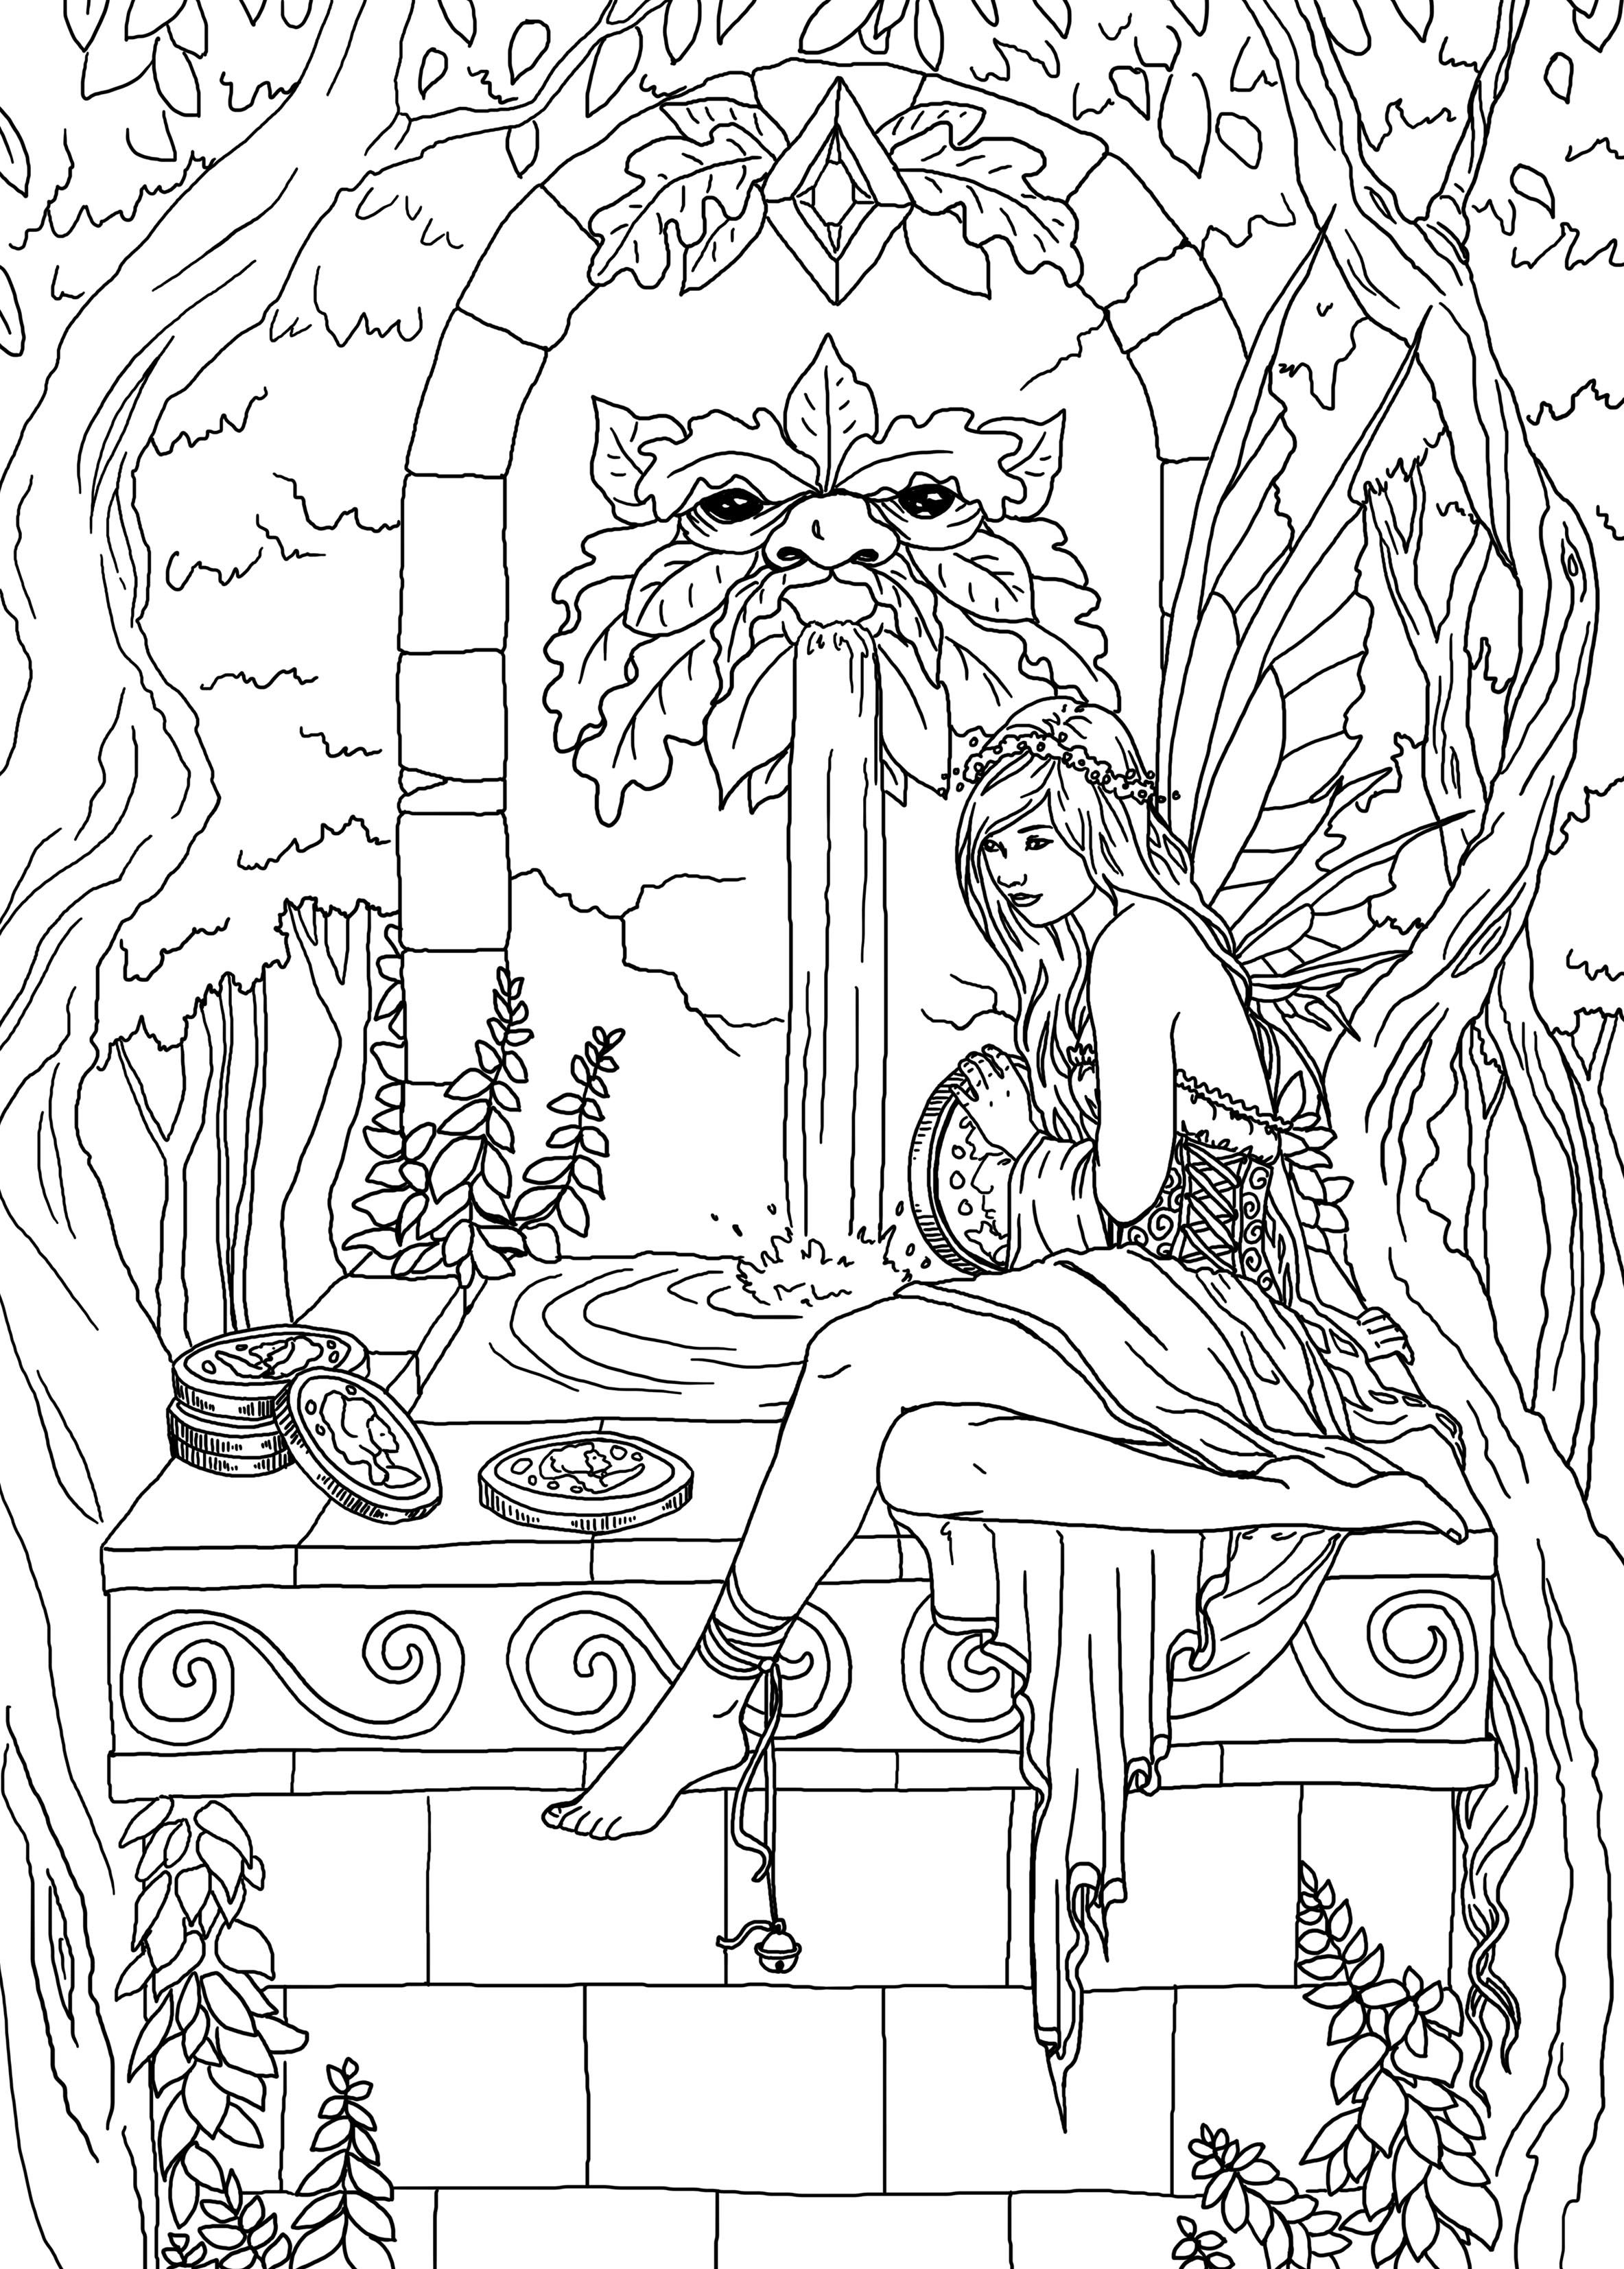 Fairy art coloring book by selina fenech - Selina Fenech Coloring Fairy Wishing Well Fairy Myth Mythical Mystical Legend Elf Fairy Fae Wings